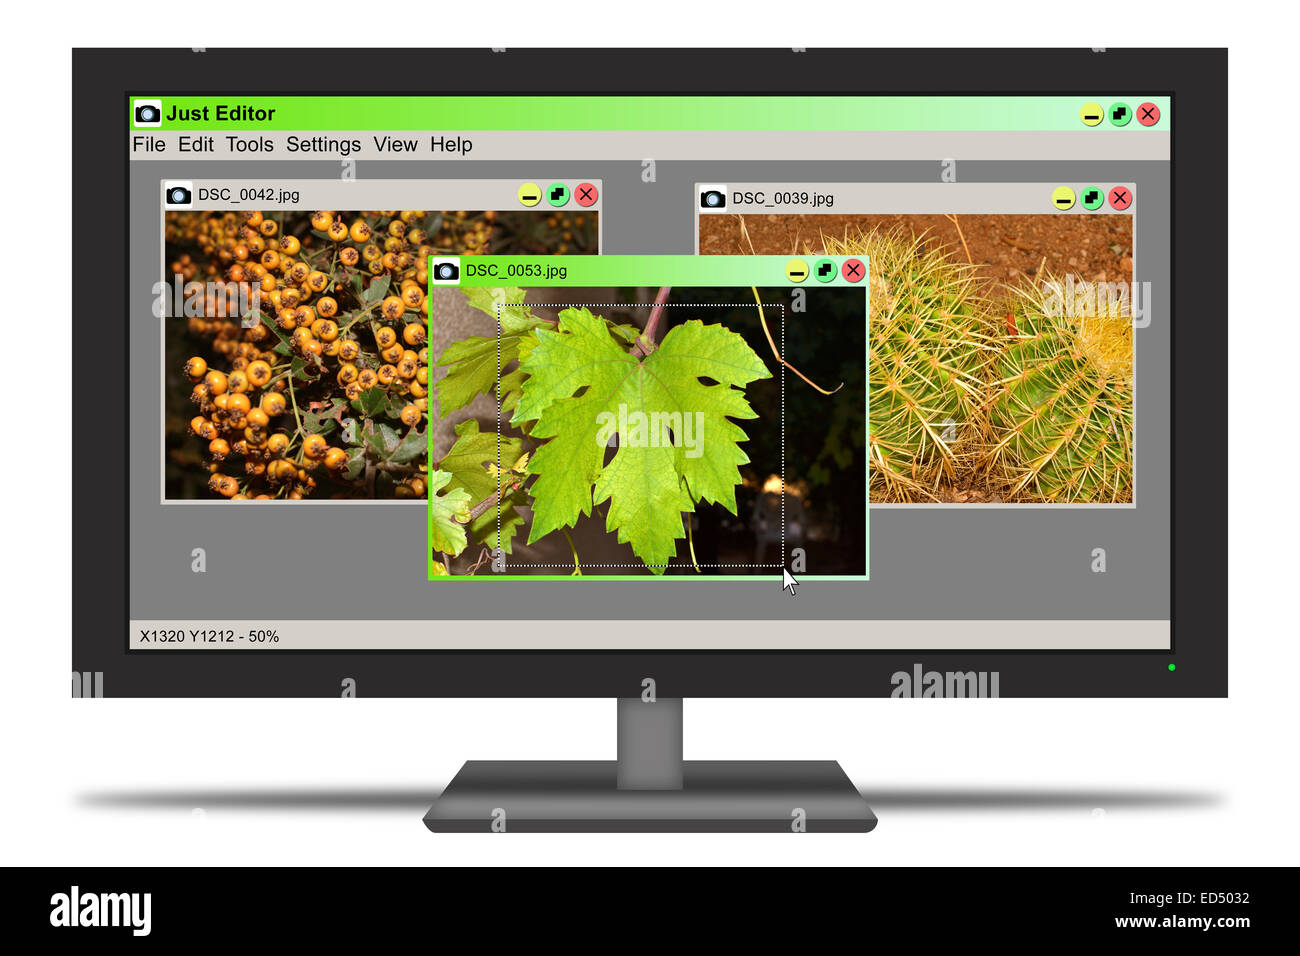 Screen showing a process of editing photos using a photo editor - Stock Image